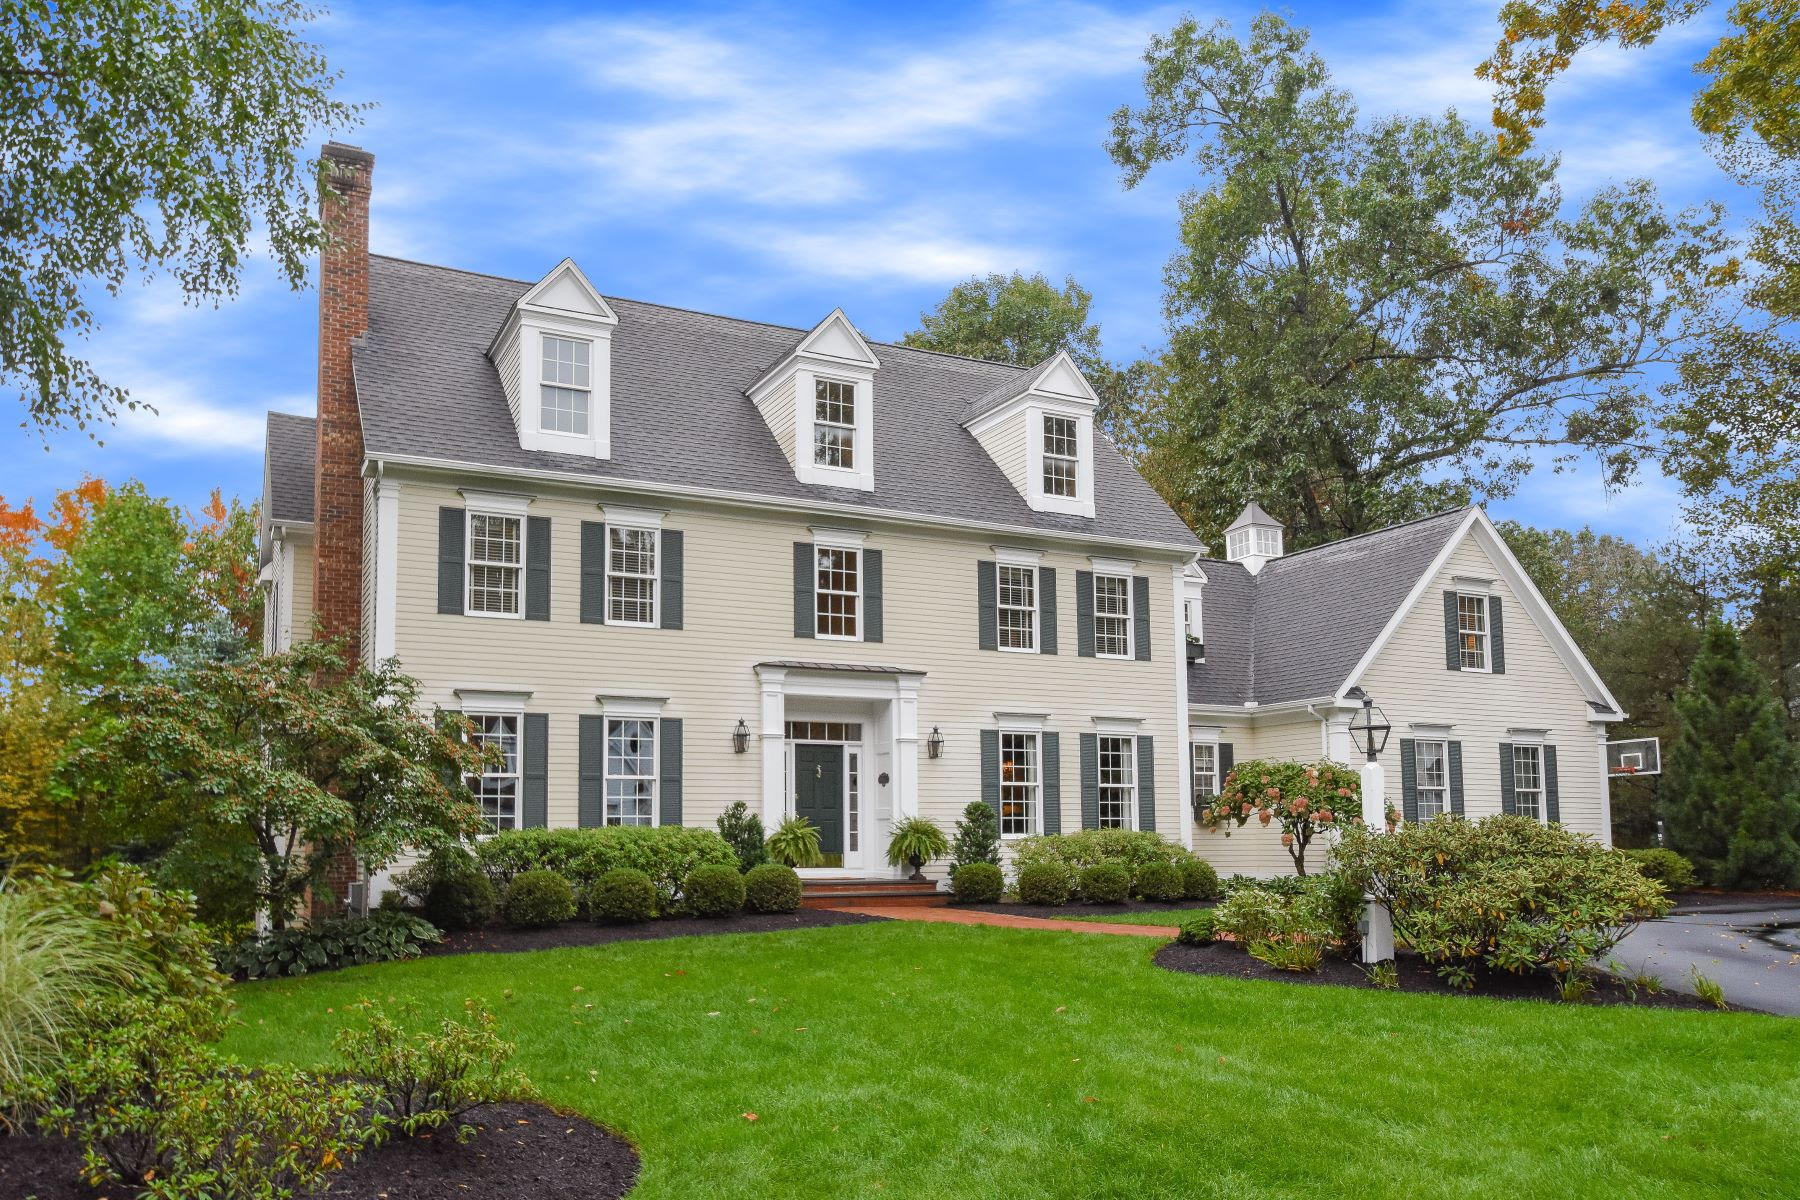 Single Family Homes for Sale at 15 Cambridge Crossing Avon, Connecticut 06001 United States